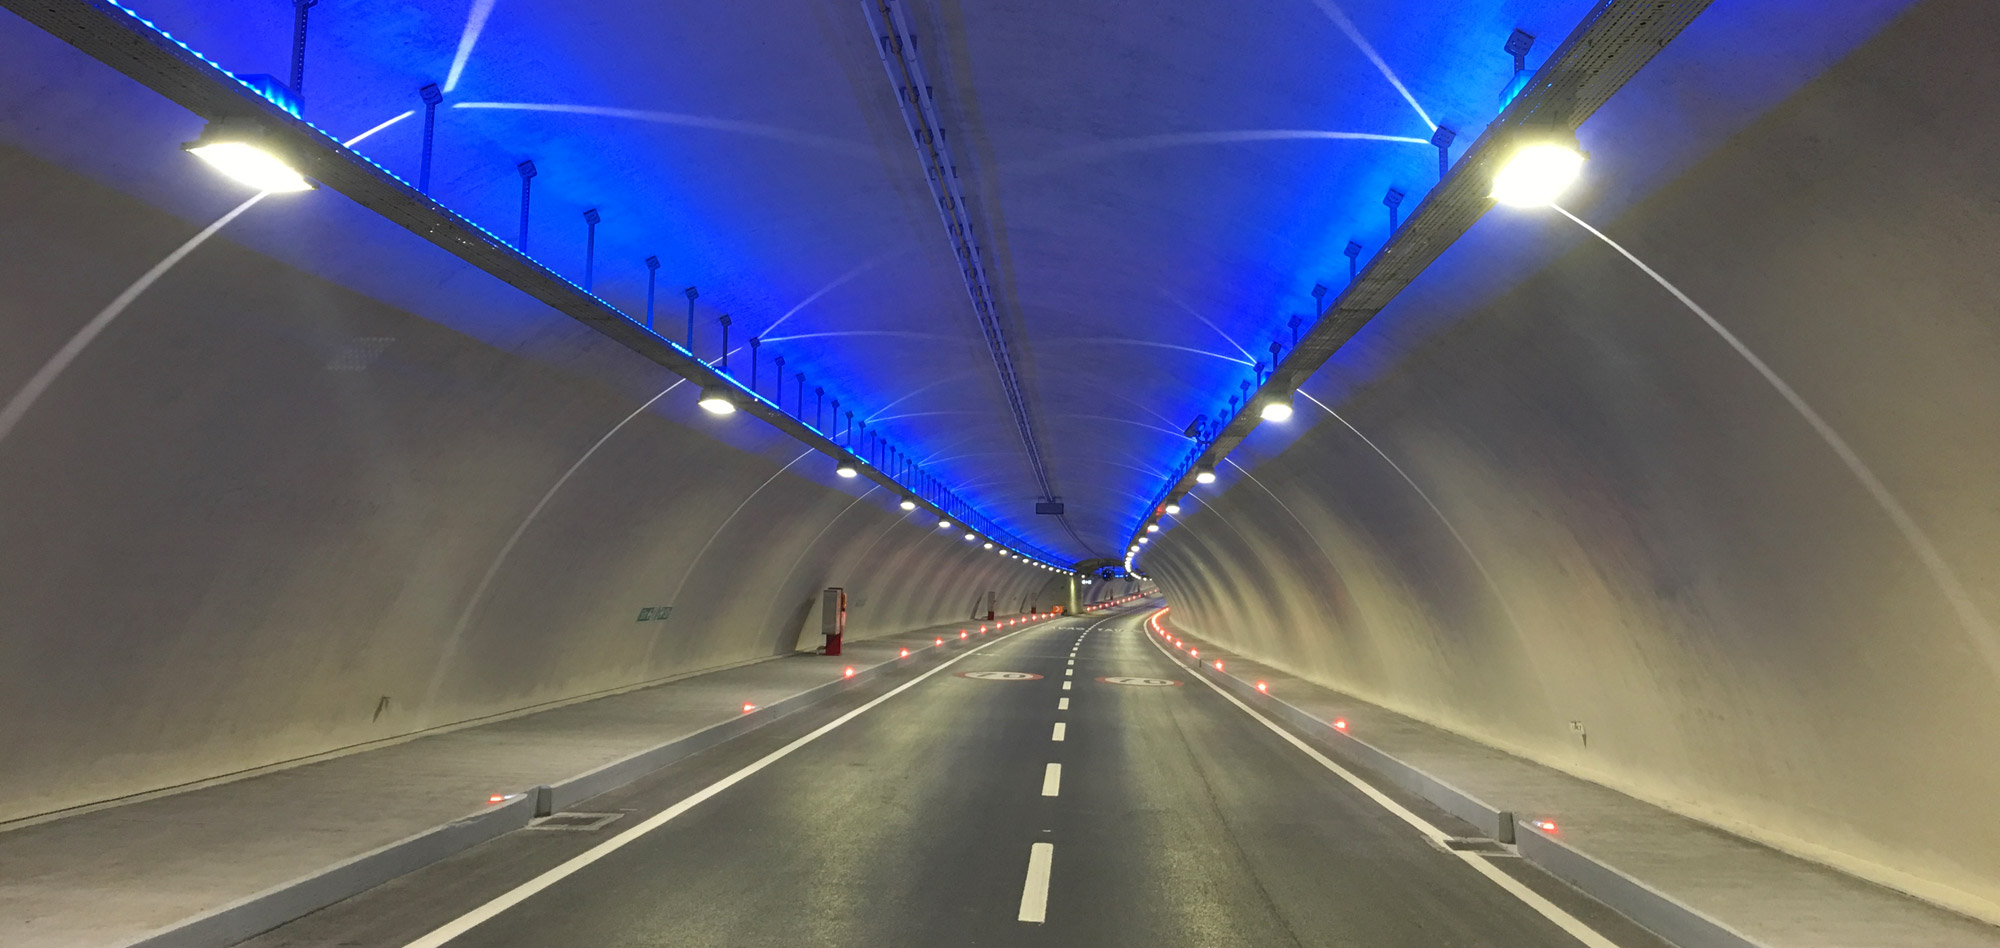 Eurasia Tunnel inaugurated in Istanbul